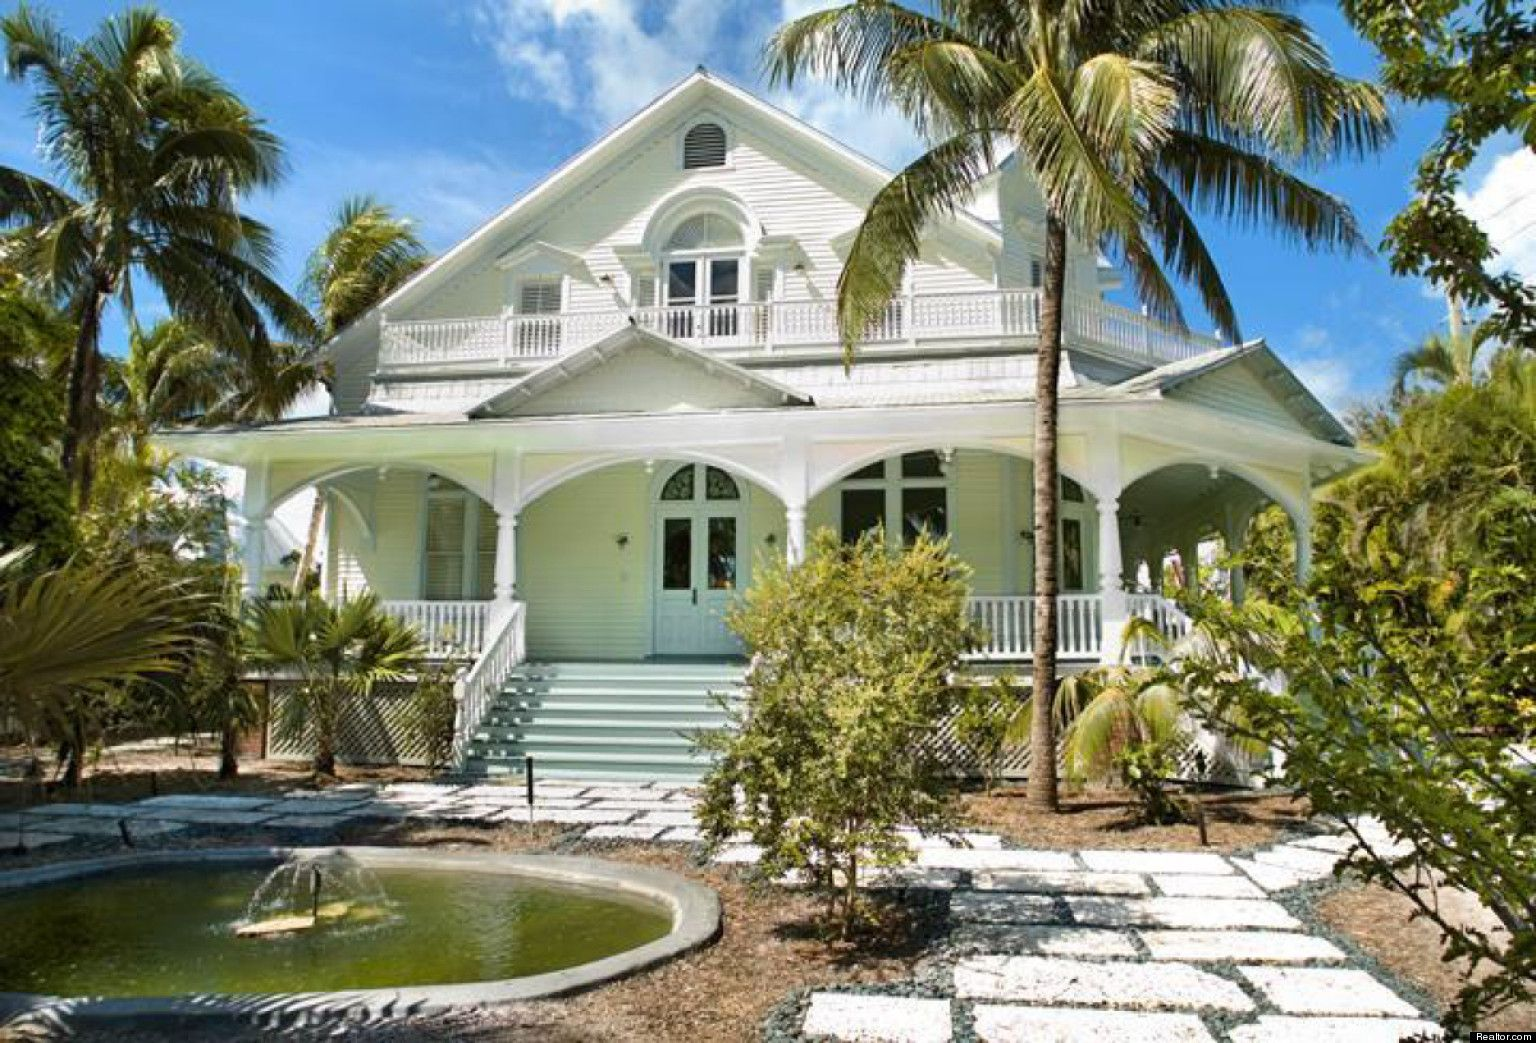 key west style homes   Key West Style Home  quot MERMAID quot    Stuff to    key west style homes   Key West Style Home  quot MERMAID quot    Stuff to Buy   Pinterest   Key West Style  Key West and Mermaids